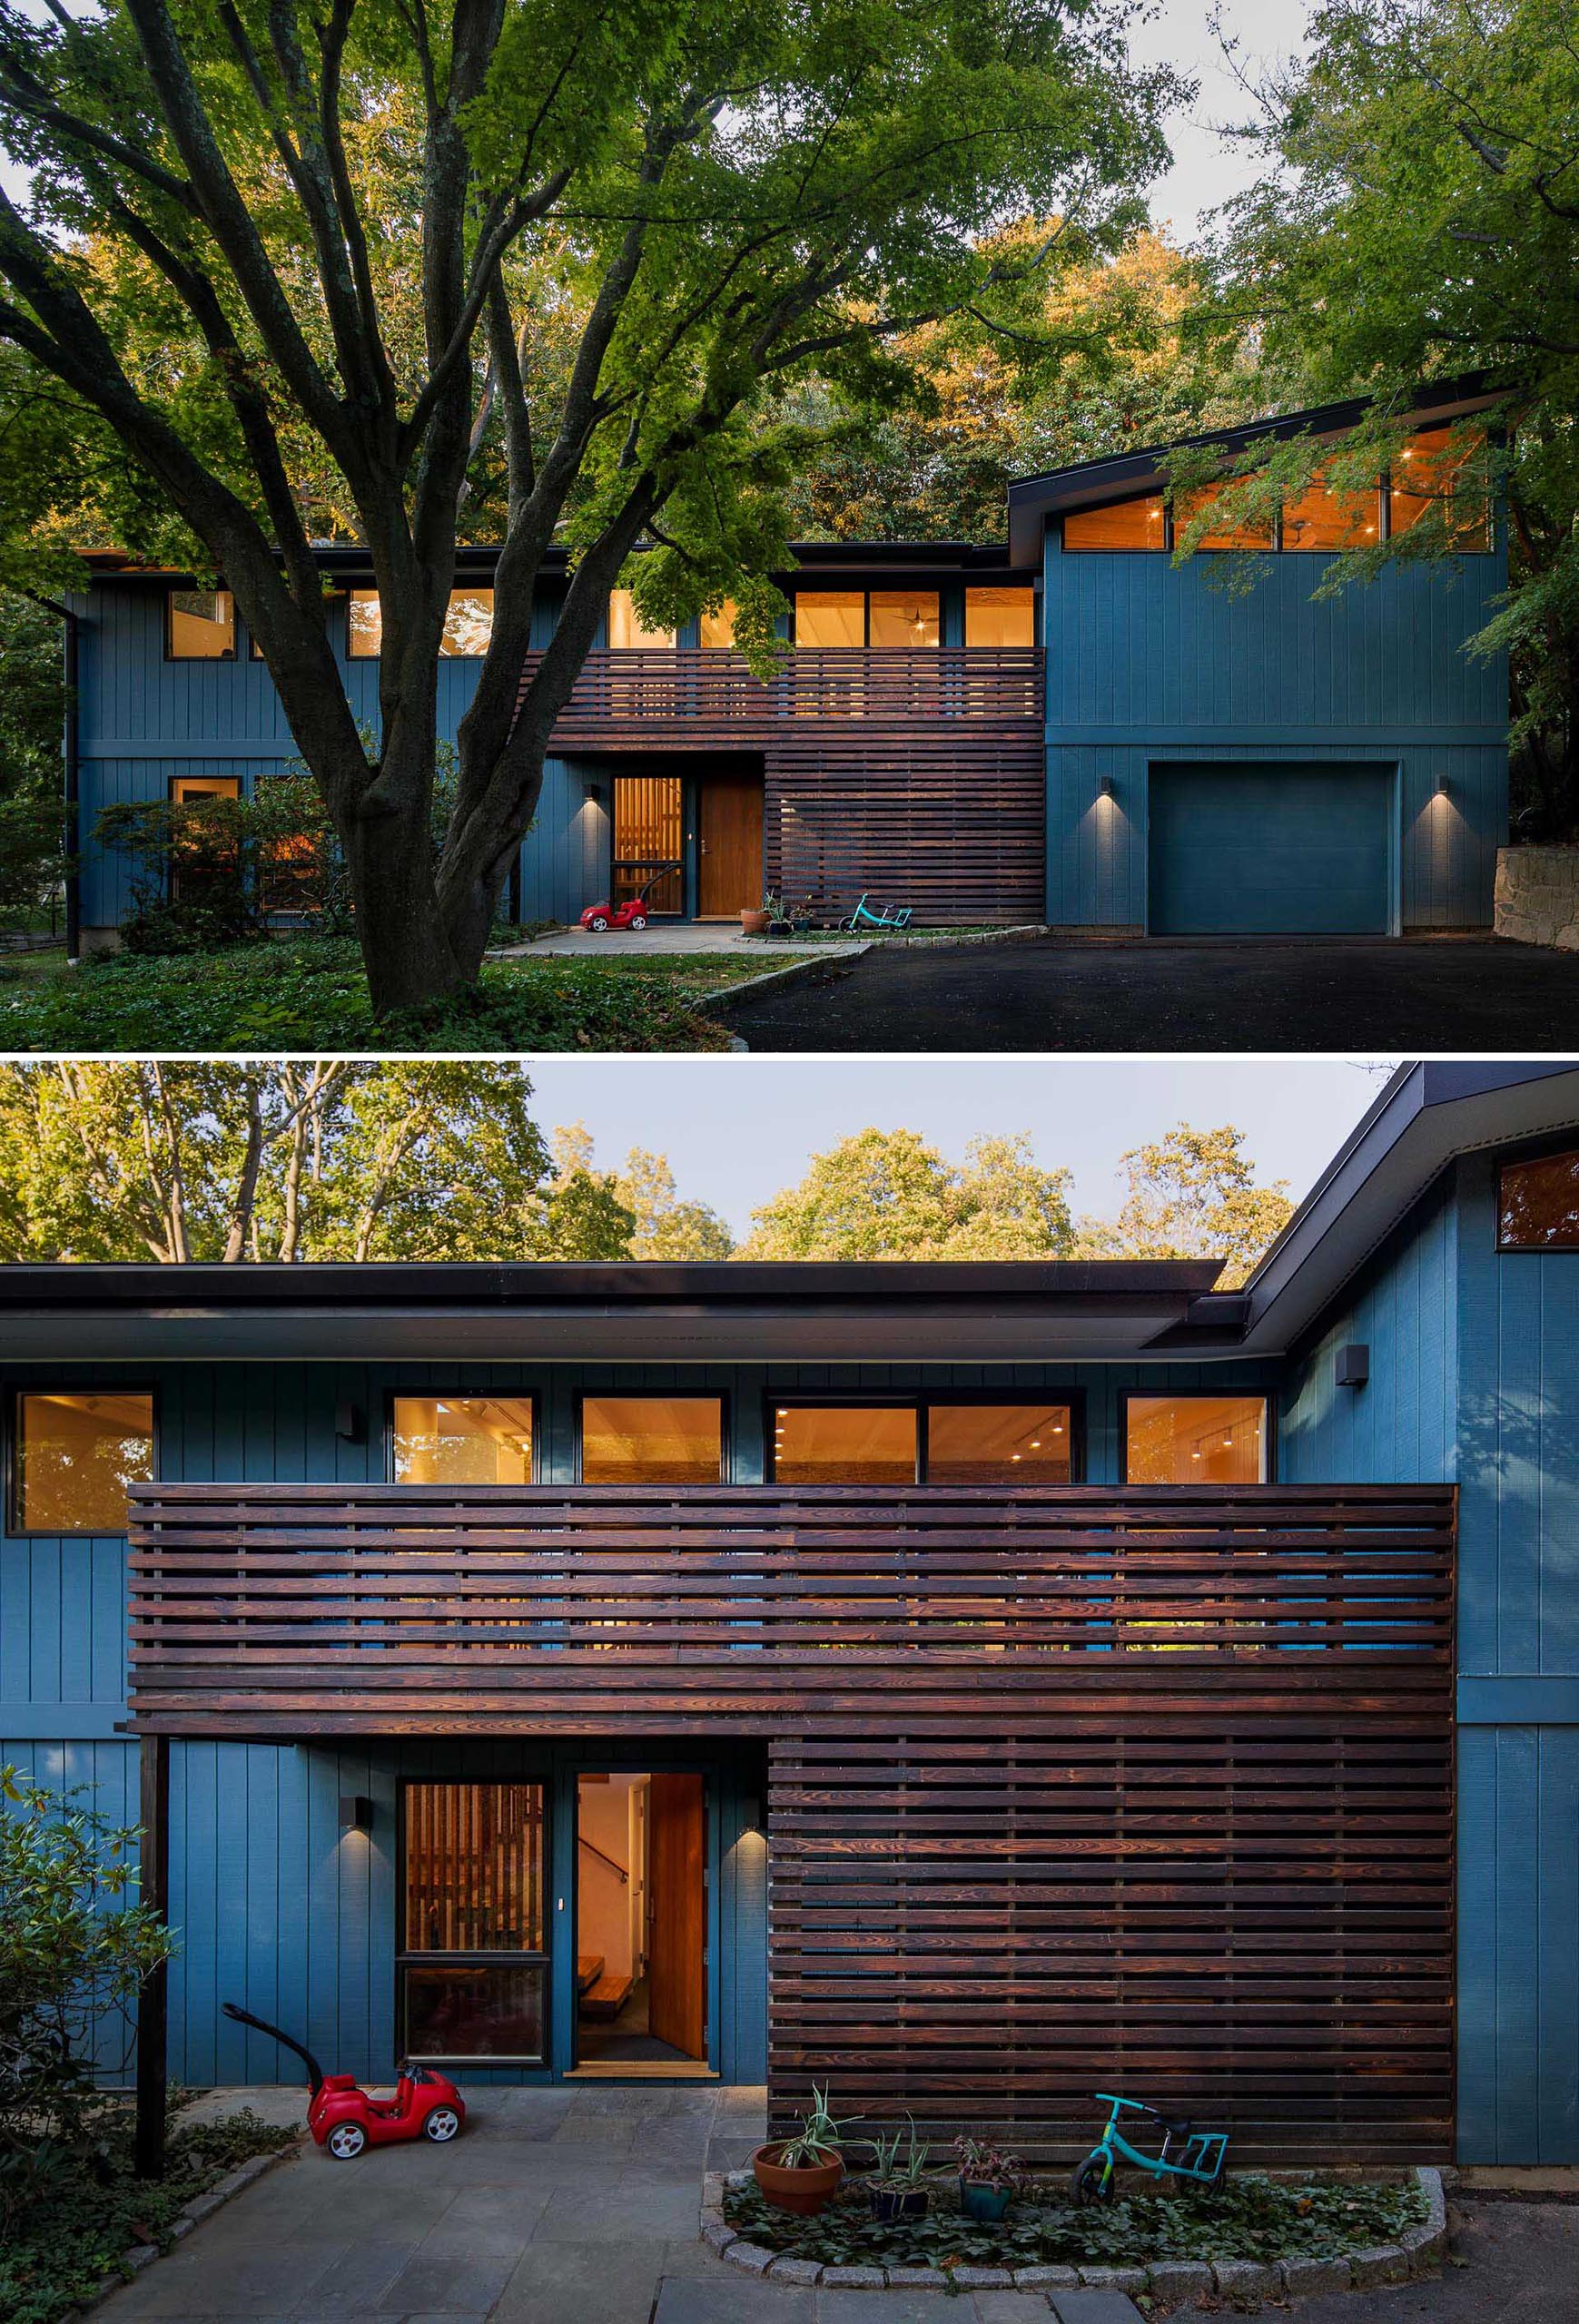 A home with a deep blue exterior and dark wood accent.